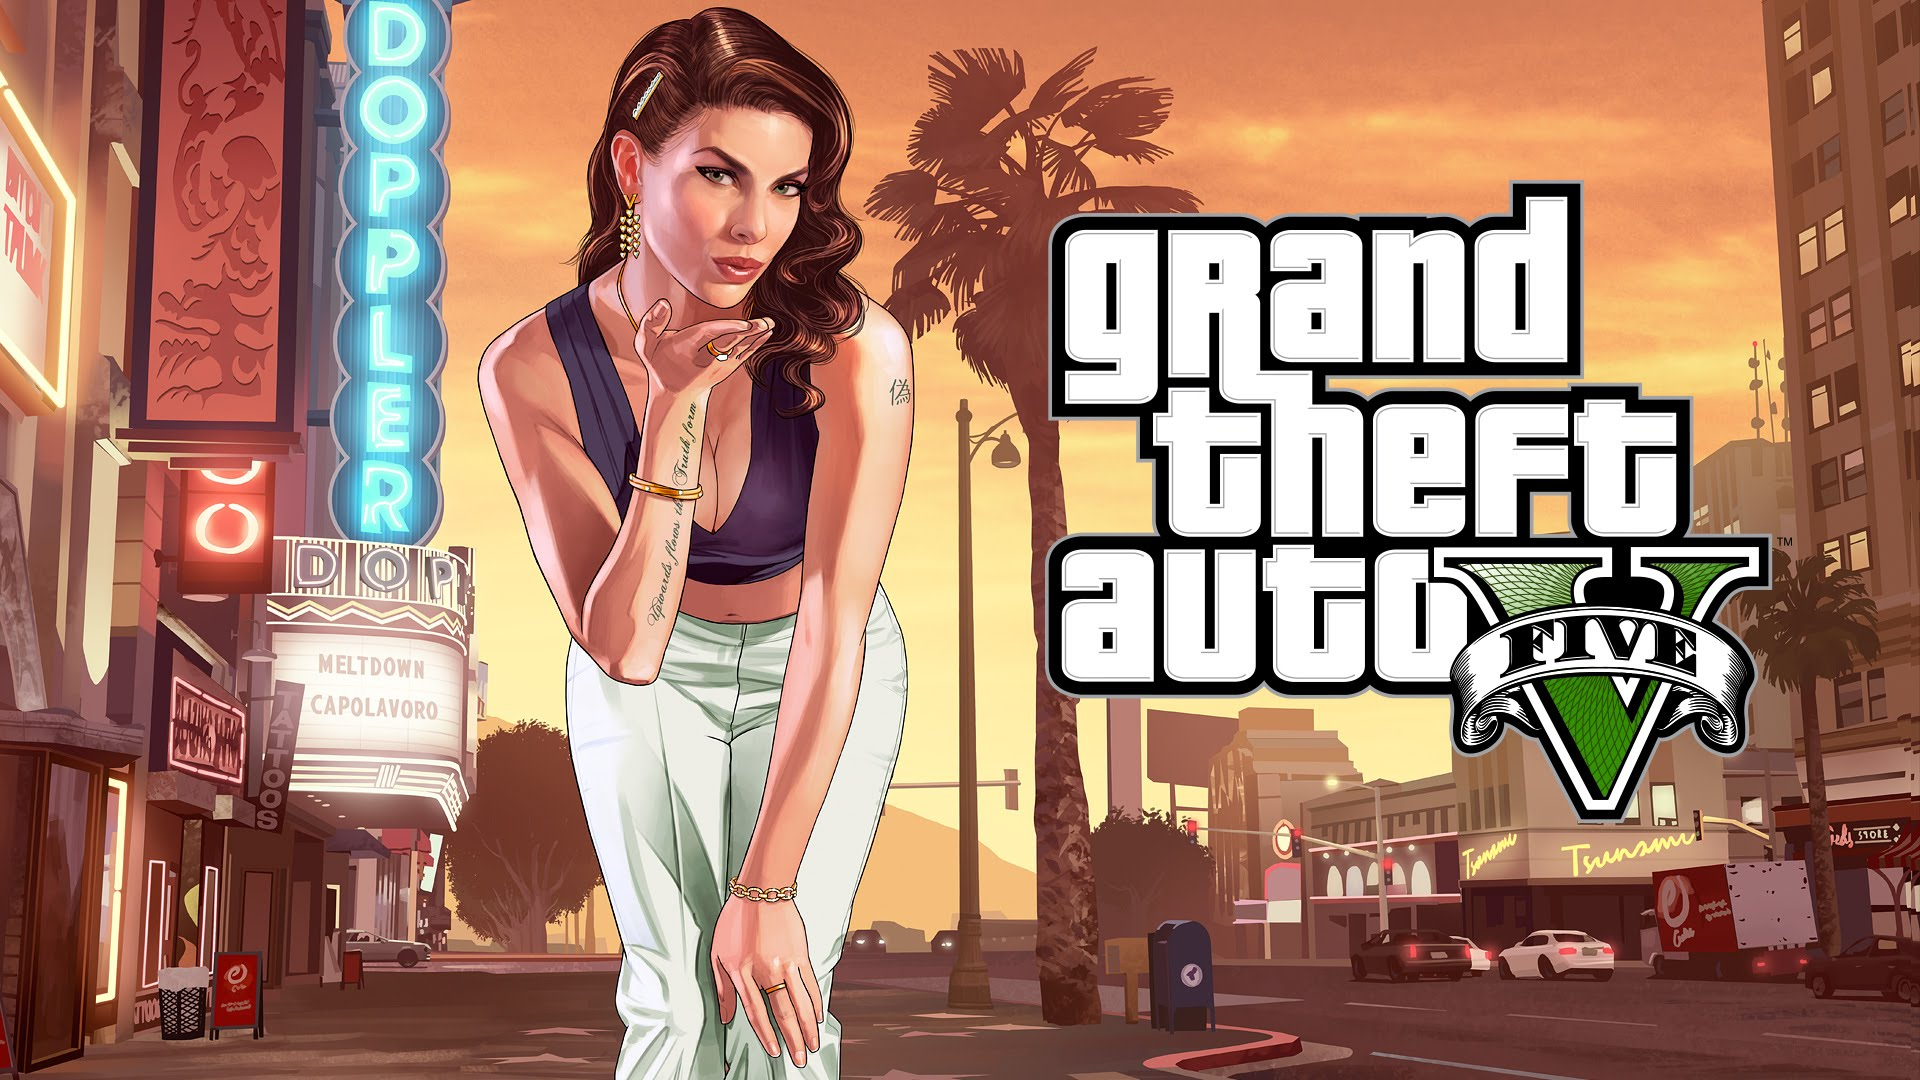 Download image gta5 pc android iphone and ipad wallpapers and - No Jailbreak Required Grand Theft Auto 5 Gtav For Ios Sideload Ipa File To Iphone And Ipad